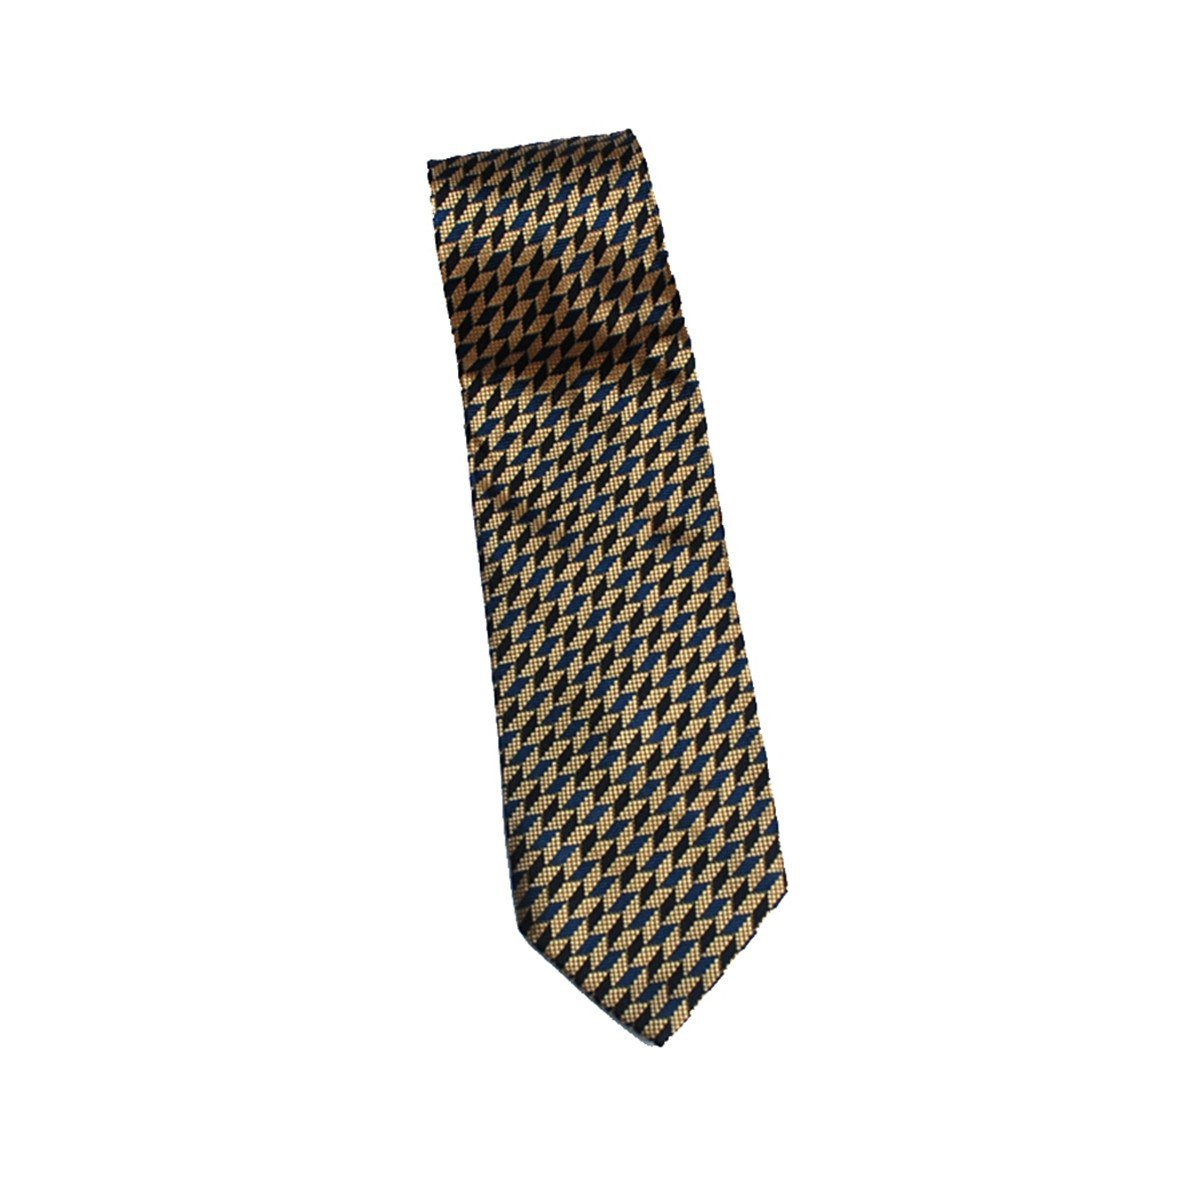 1980s Men's Navy & Gold Silk Tie by Bolgheri, Geometric Design